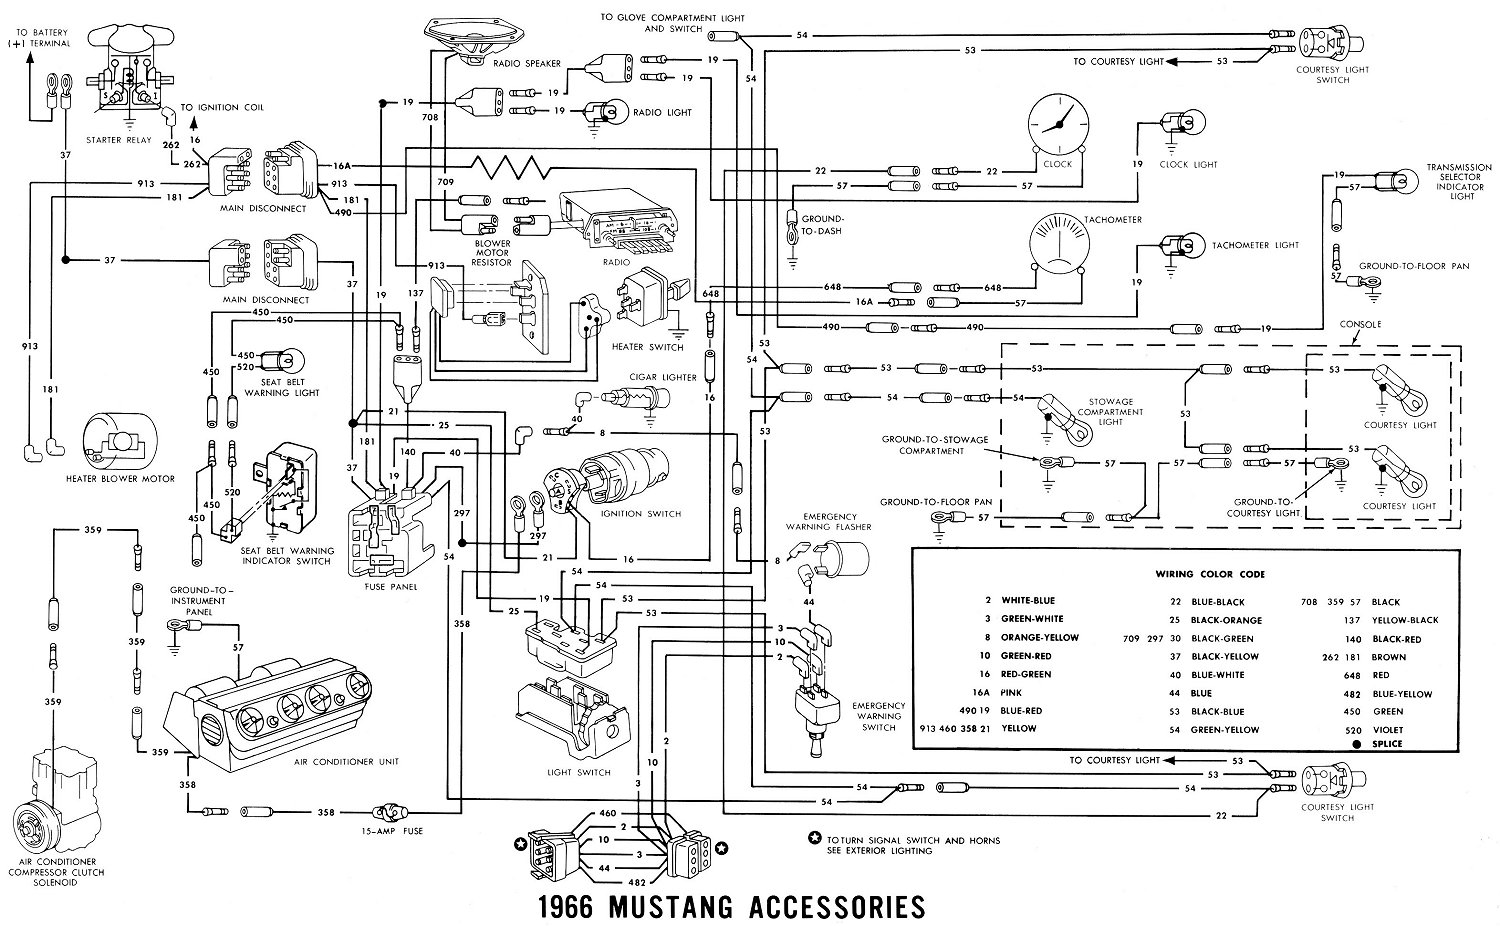 66acces1 1966 mustang wiring diagrams average joe restoration 1966 mustang wiring diagrams electrical schematics at nearapp.co